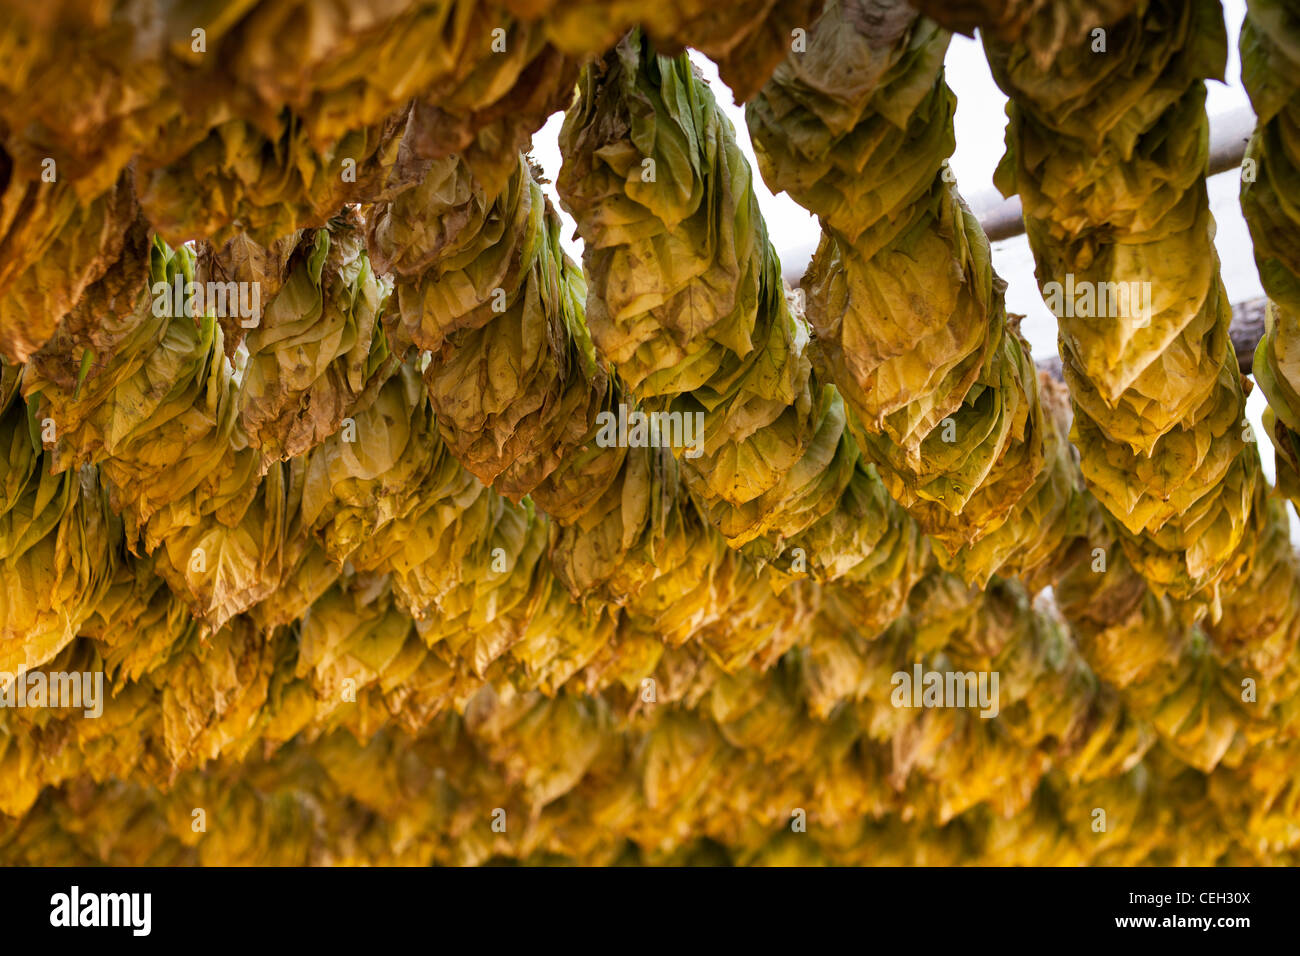 Tobacco farming. Tobacco (Nicotiana sp.) leaves drying in the shade. - Stock Image